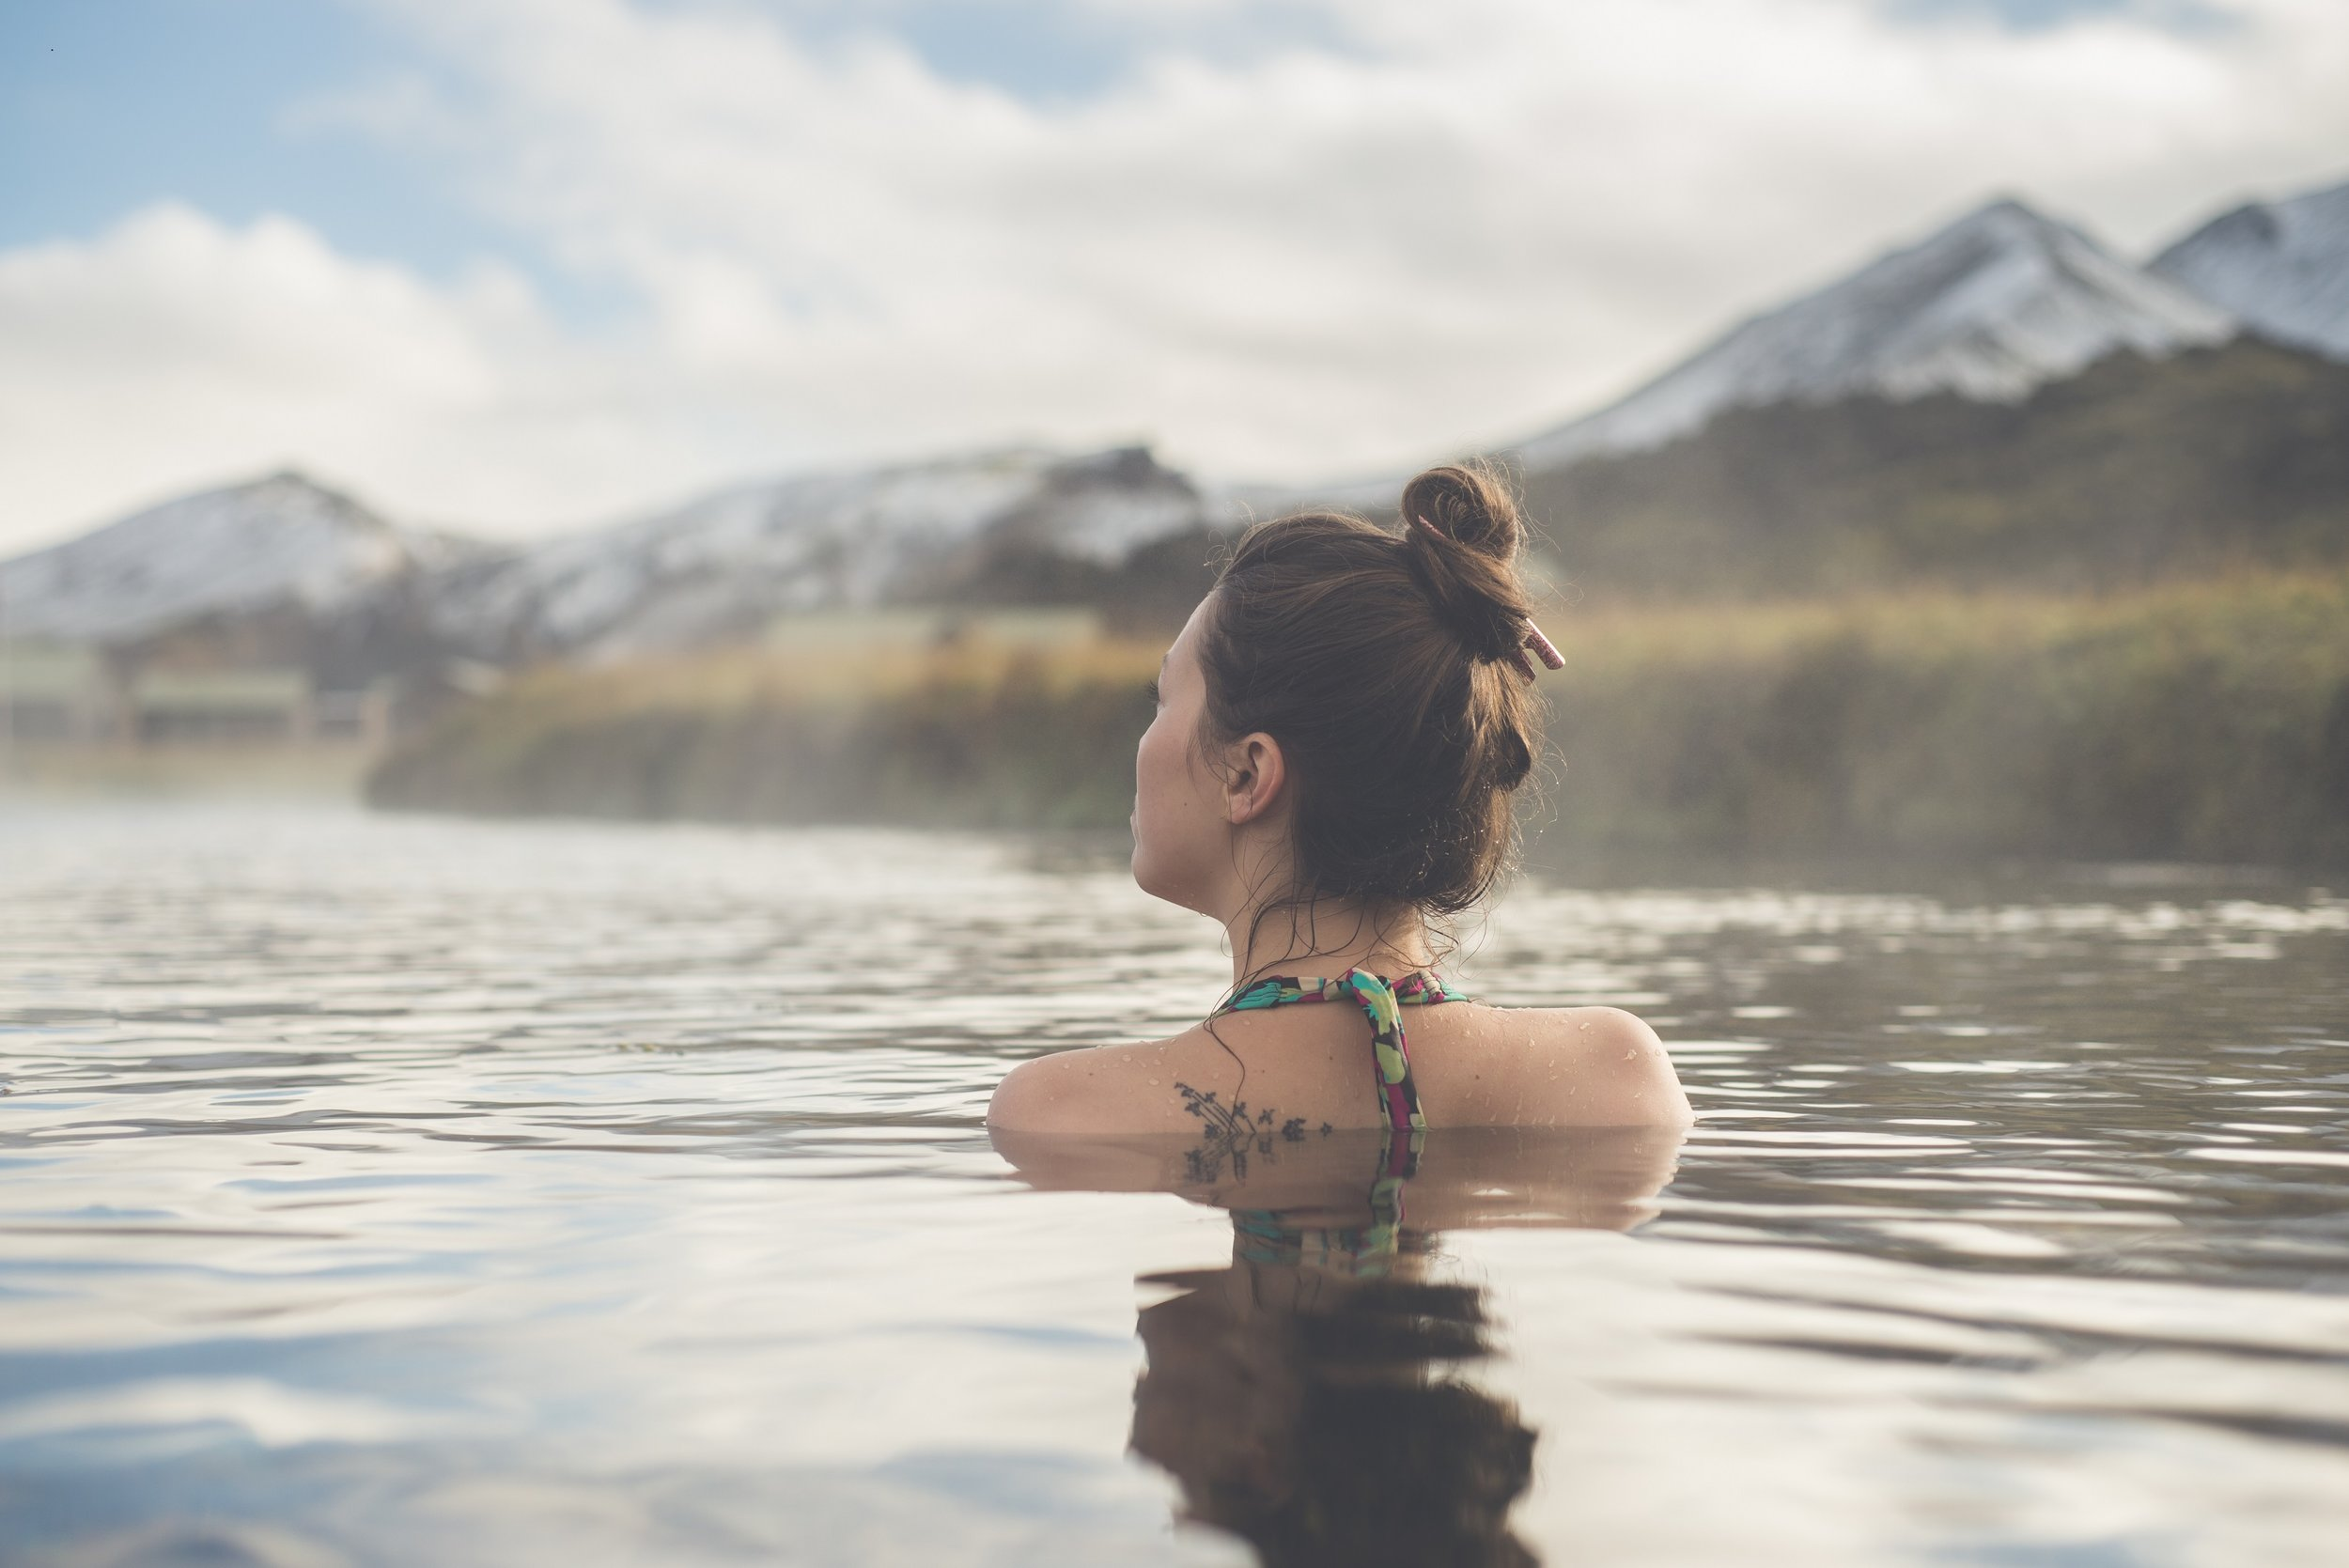 - Soak the day's muscle aches away in one of the many hot springs along the ride.